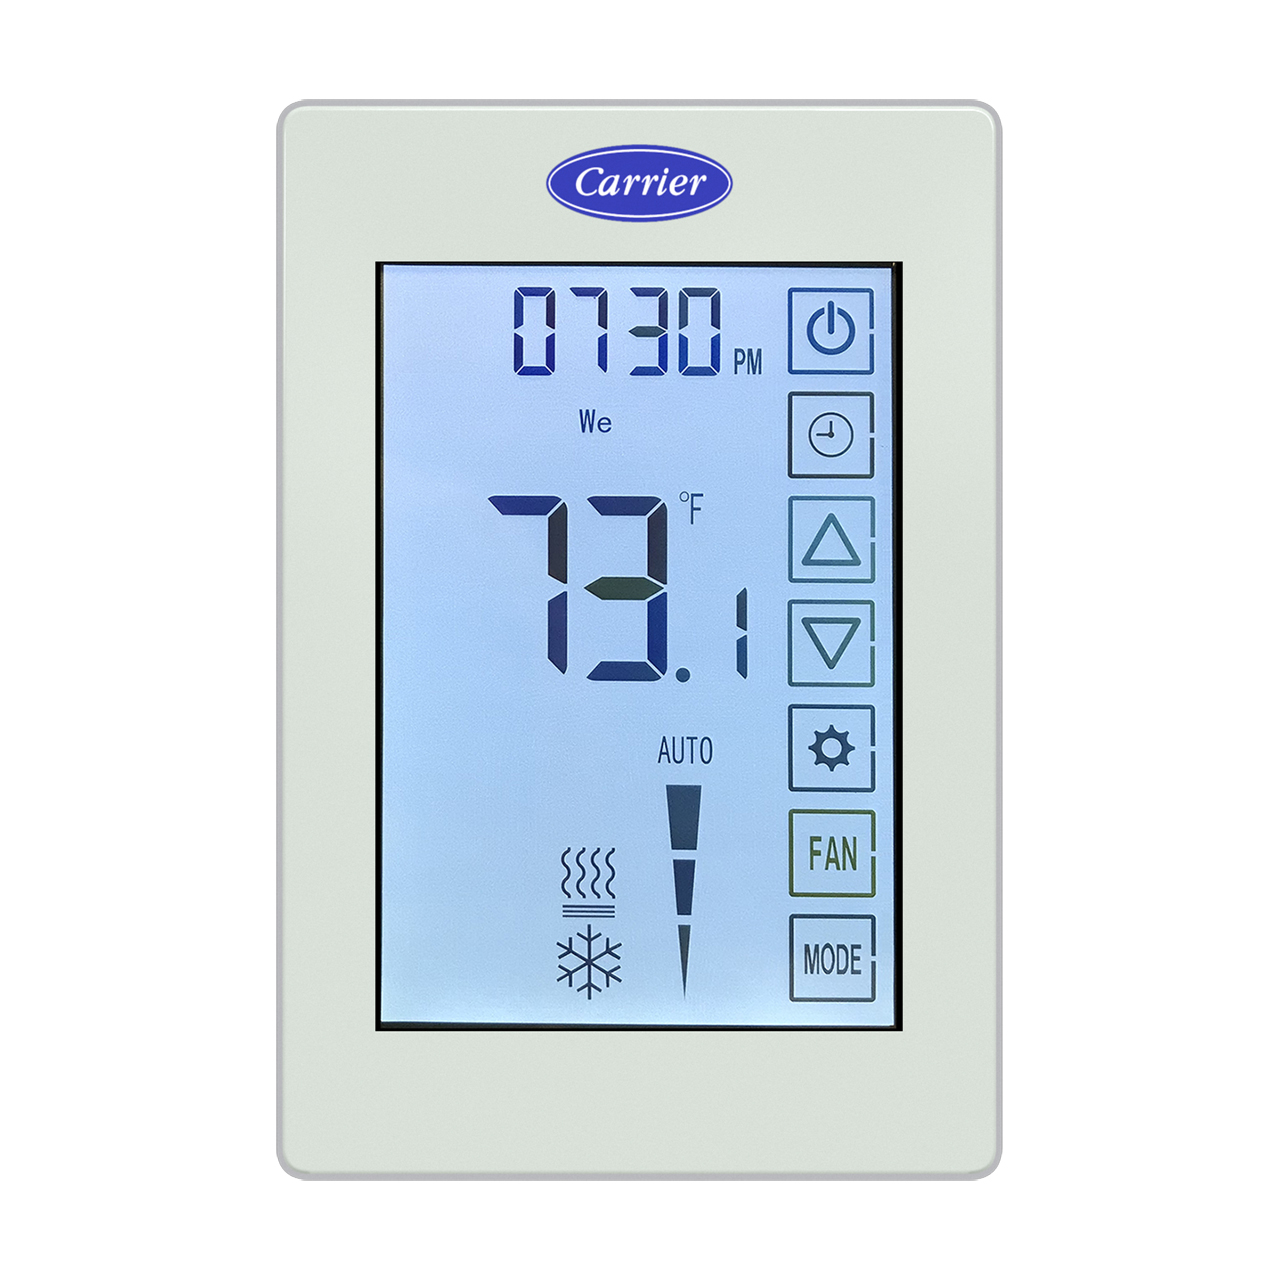 carrier-TBPL-H-C-comfortvu-bacnet-thermostat-24vac-plus